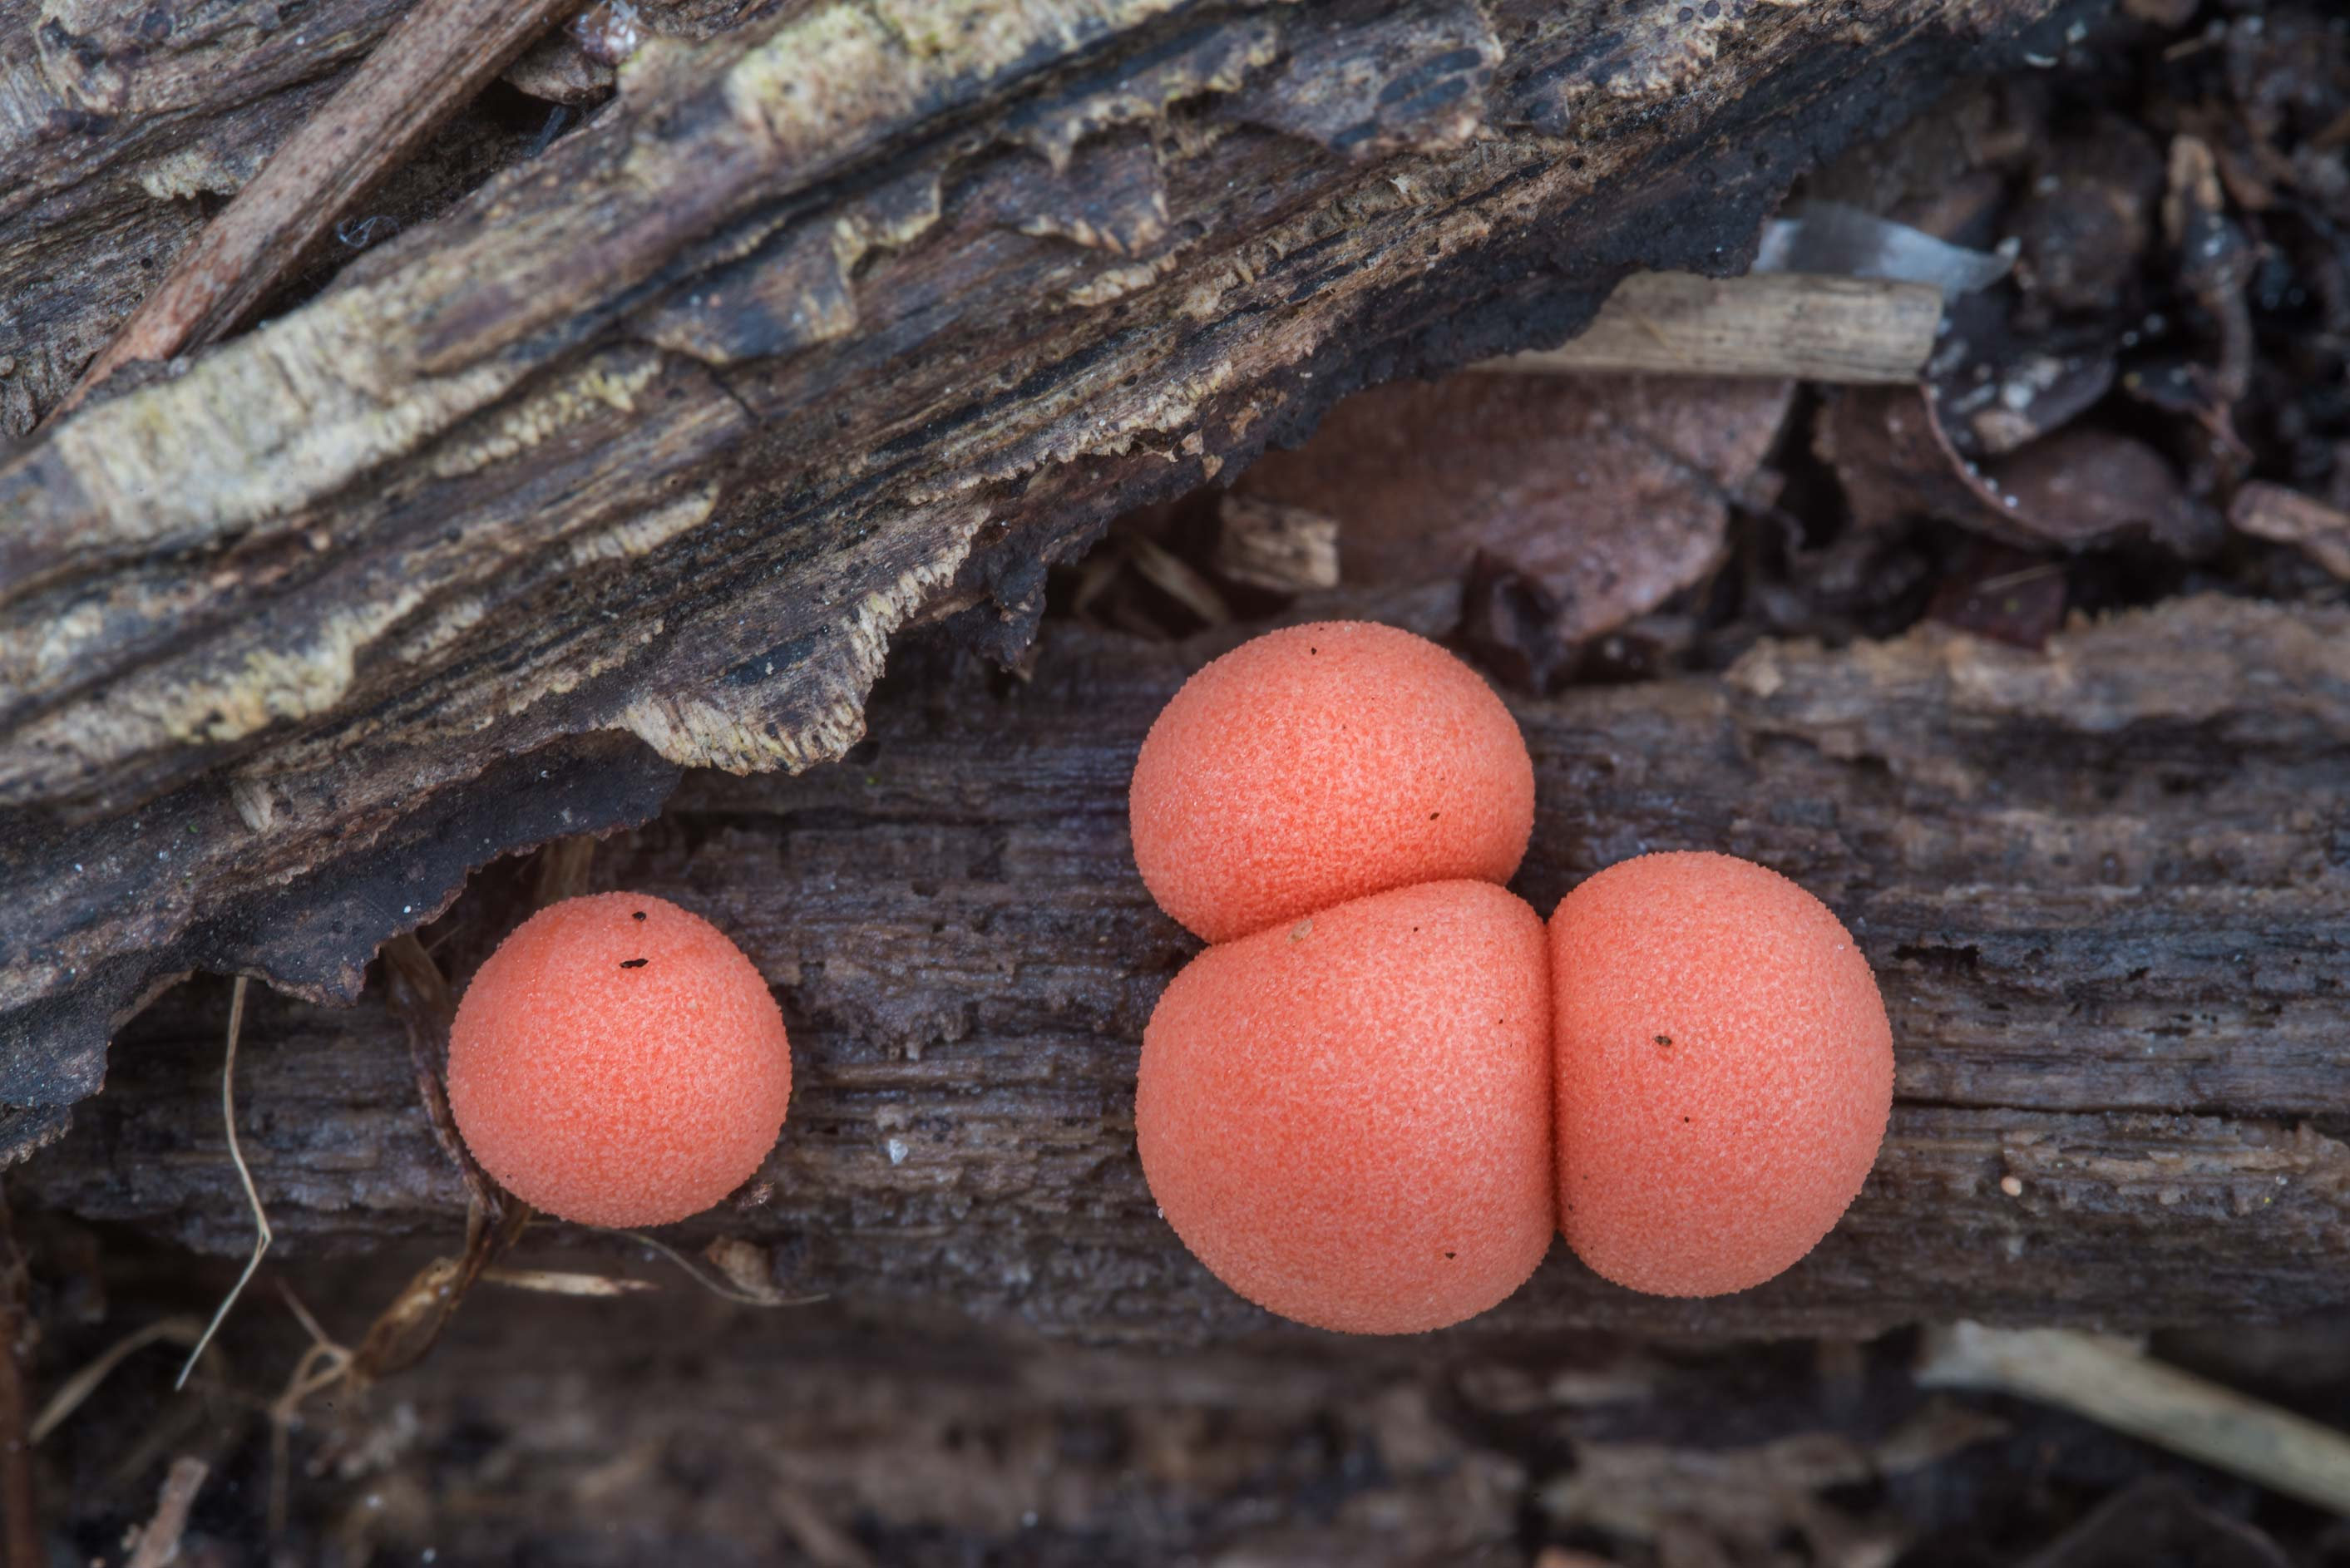 Wolf's milk slime mold (Lycogala epidendrum) on...Nature Trail. College Station, Texas